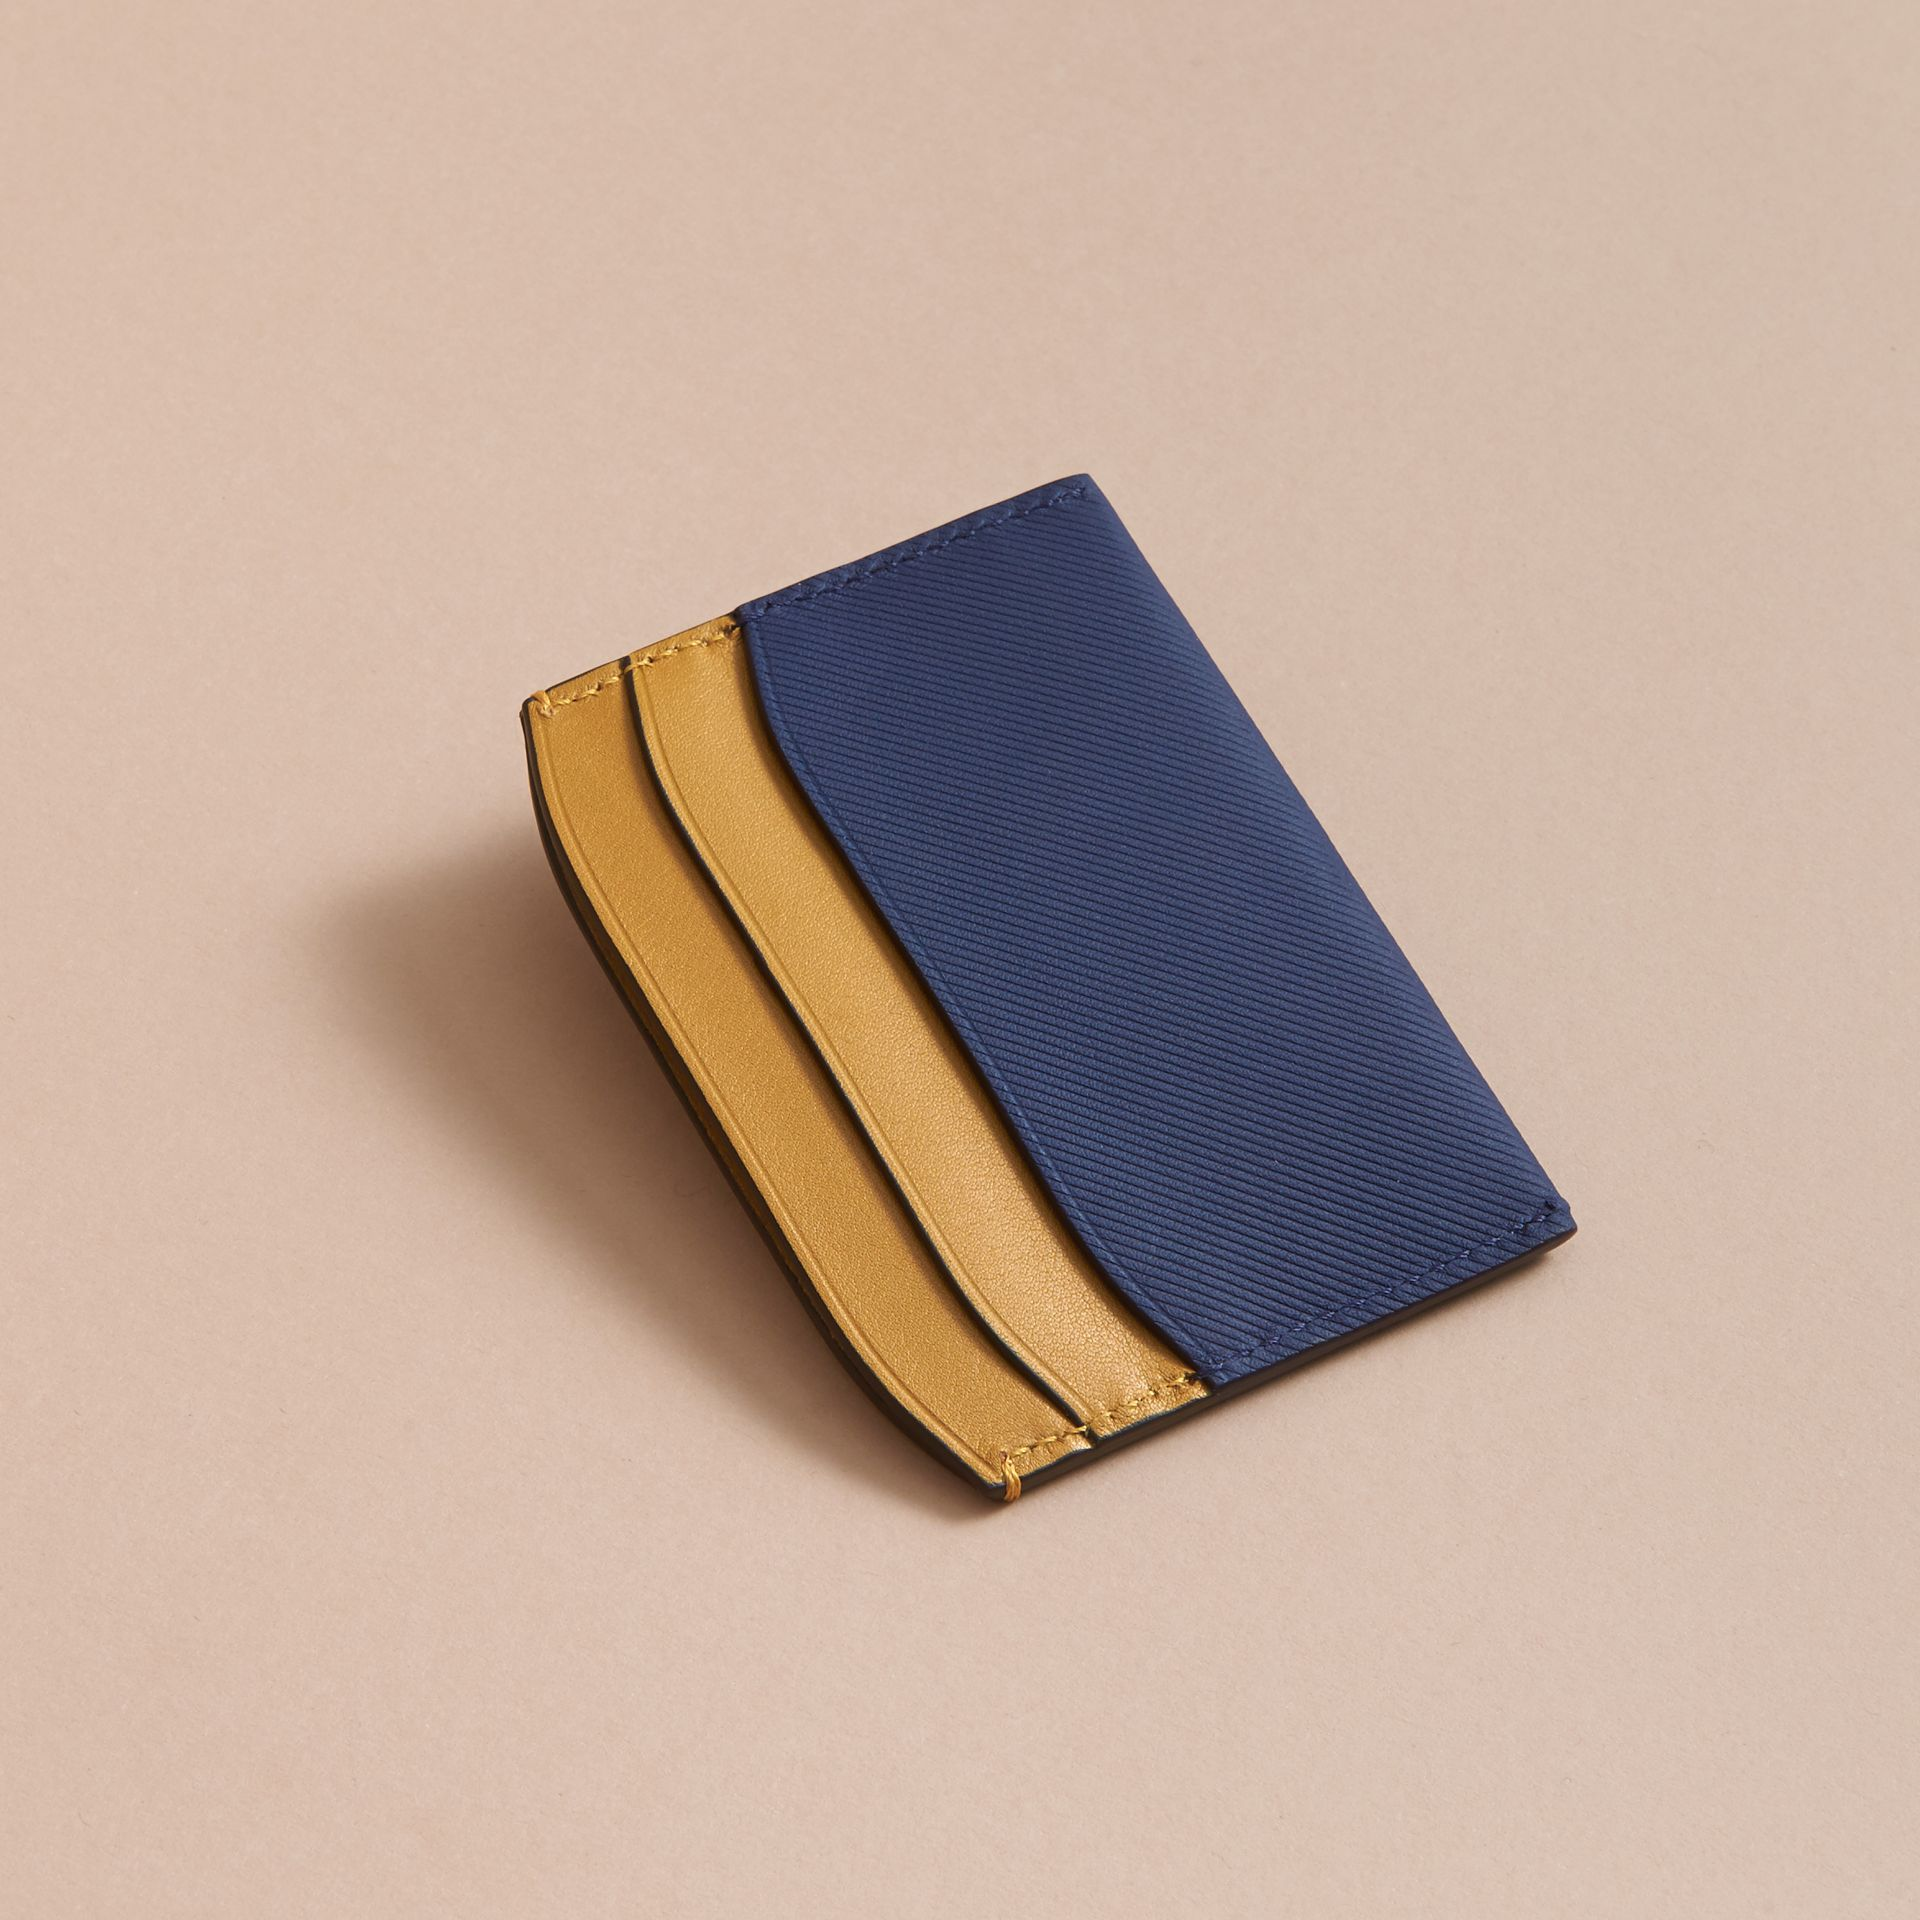 Two-tone Trench Leather Card Case in Ink Blue/ochre Yellow - Women | Burberry Canada - gallery image 3